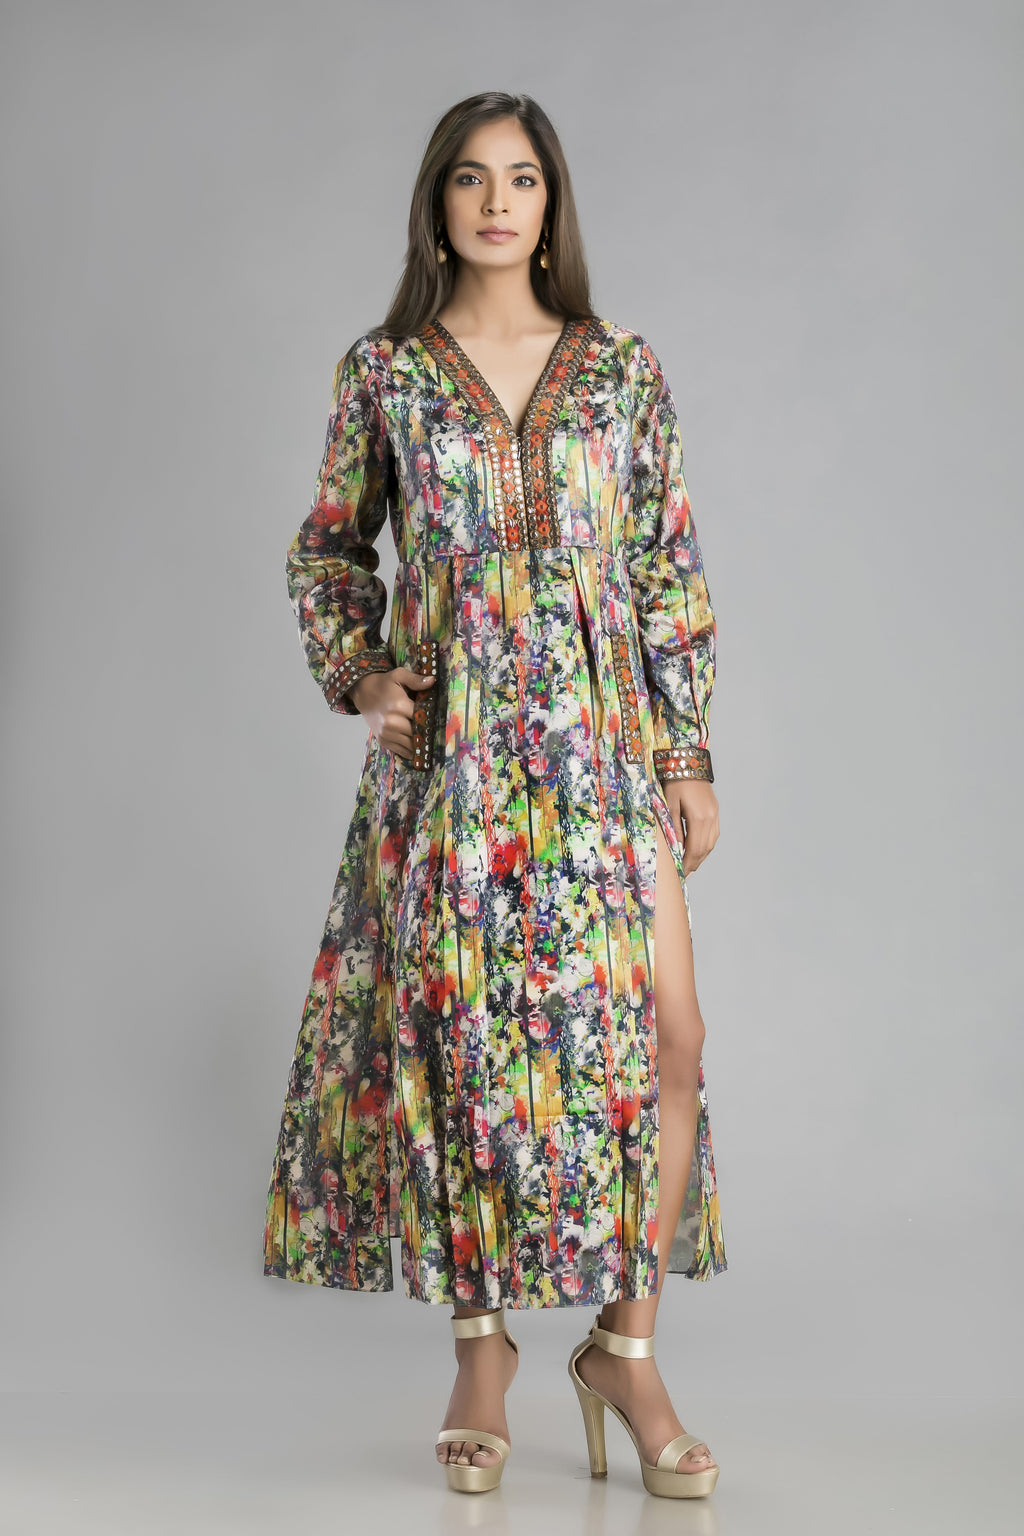 The Busy Print Bohemian Dress for the new relaxed look